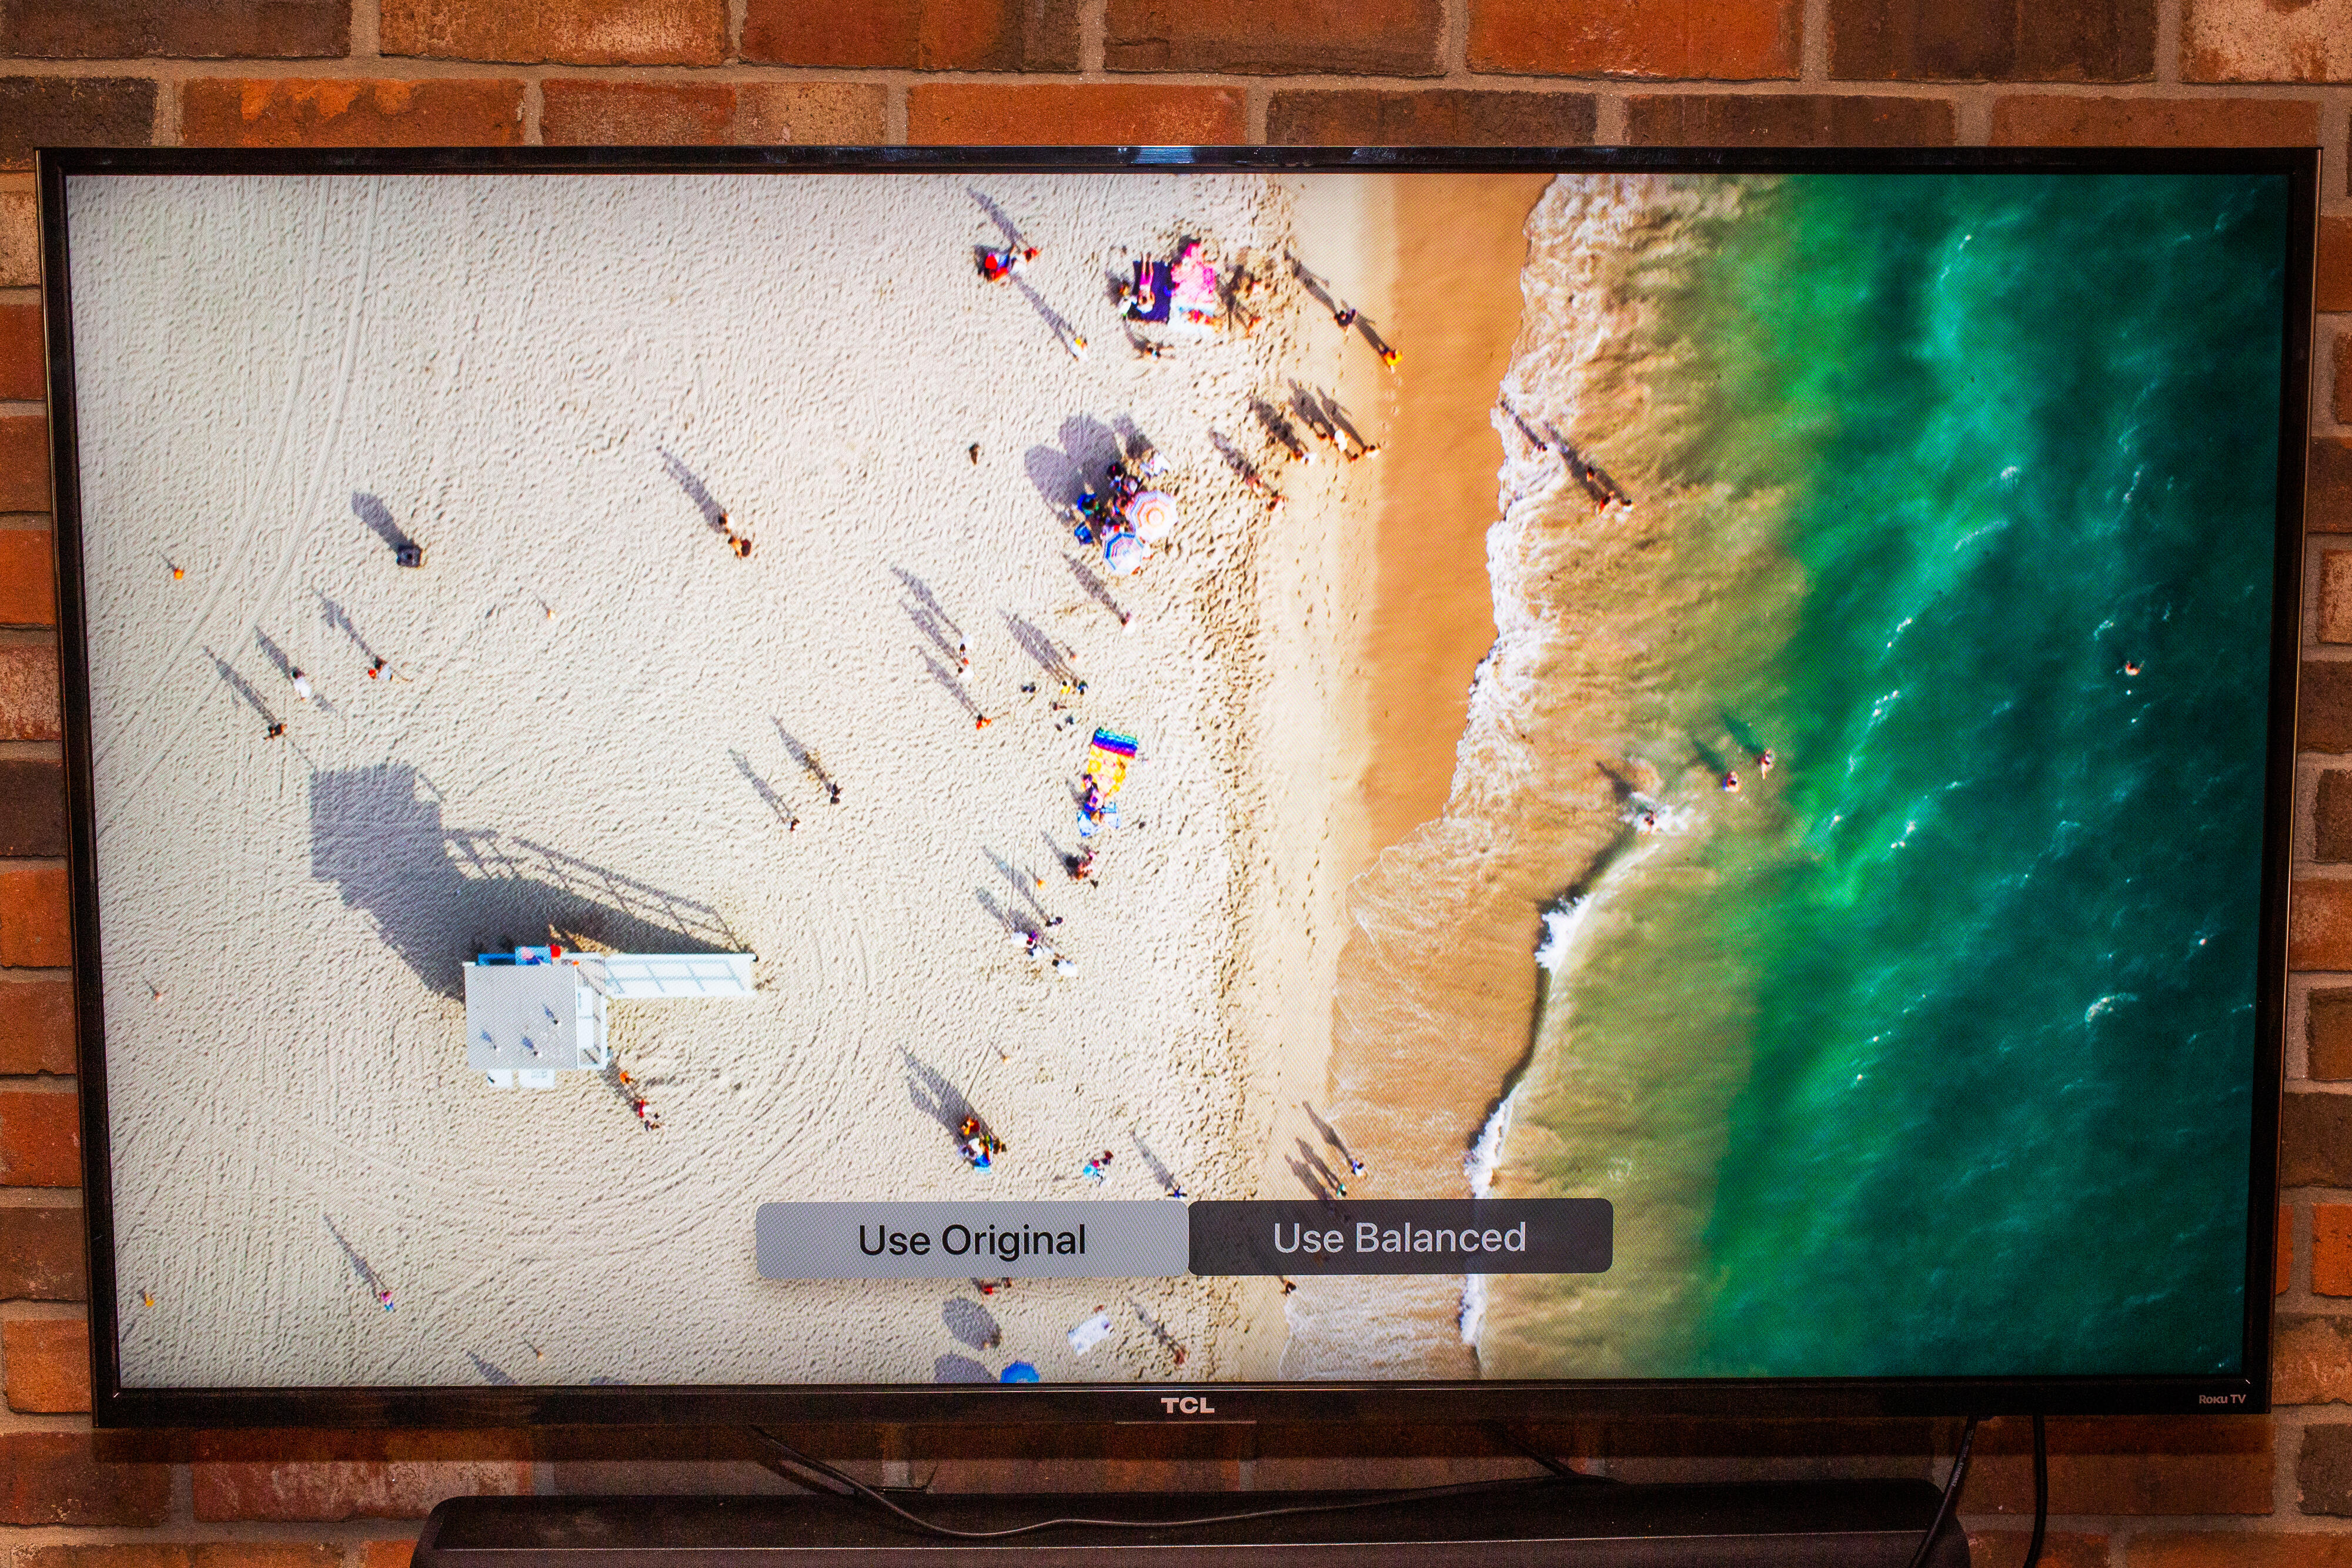 013-apple-tv-screen-calibration-with-ios-14-5-iphone-face-detection-camera